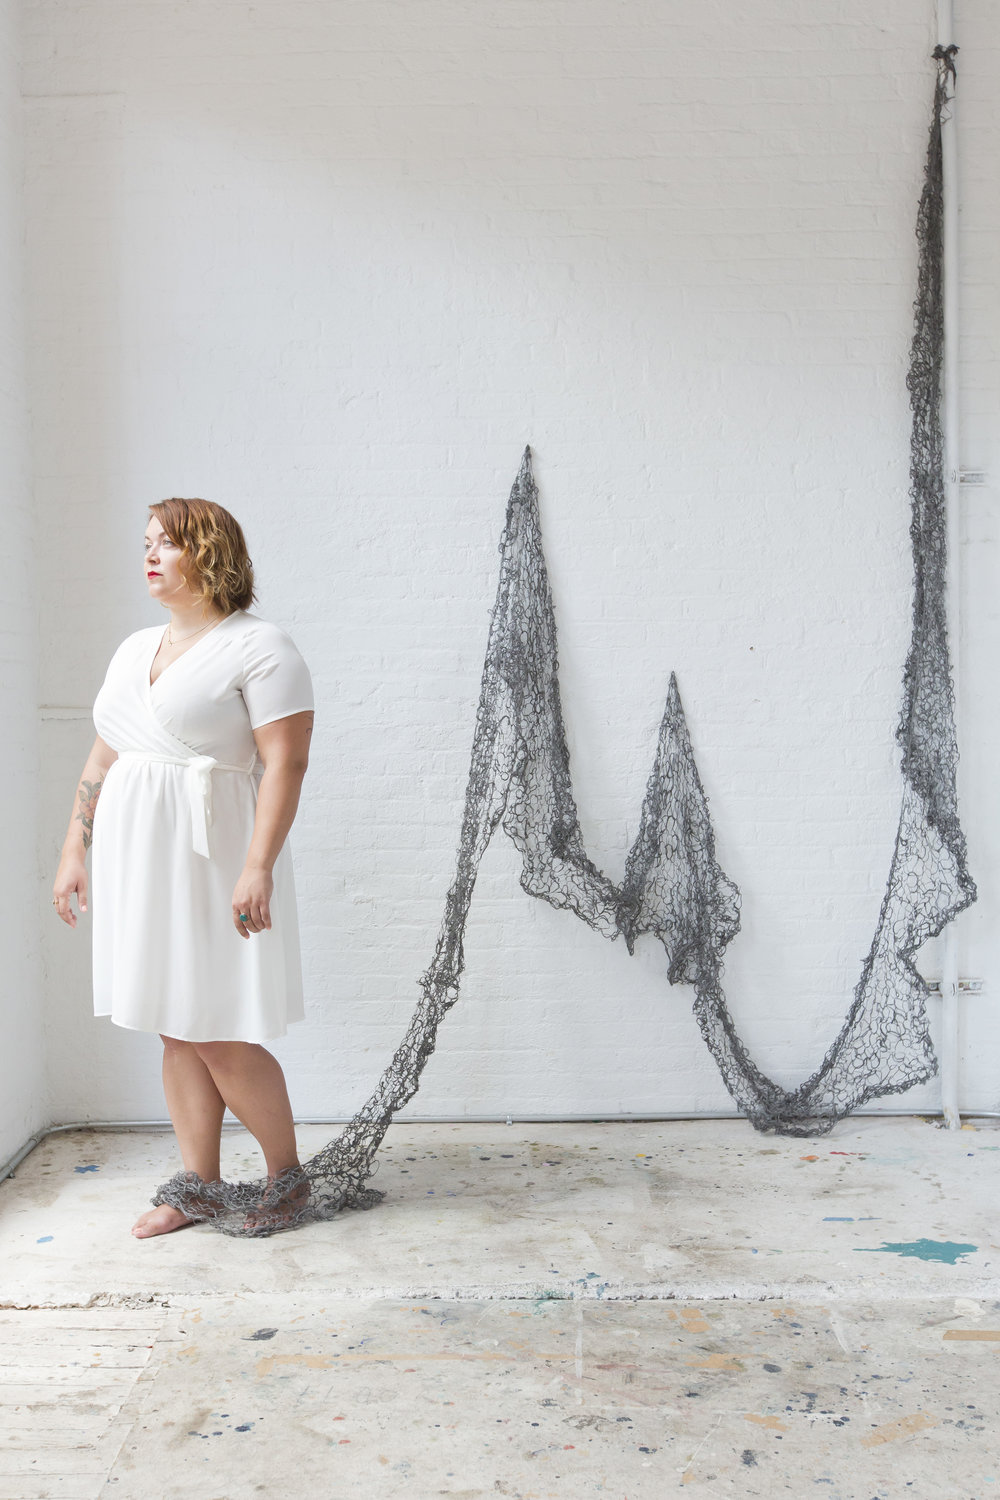 Image of Kate Bernyk looking outside the window with the steel wool blanket tying around her ankles. The image resembles a fisherman's net with the steel wool blanket being held up at points on the wall to showcase the dip in the material.